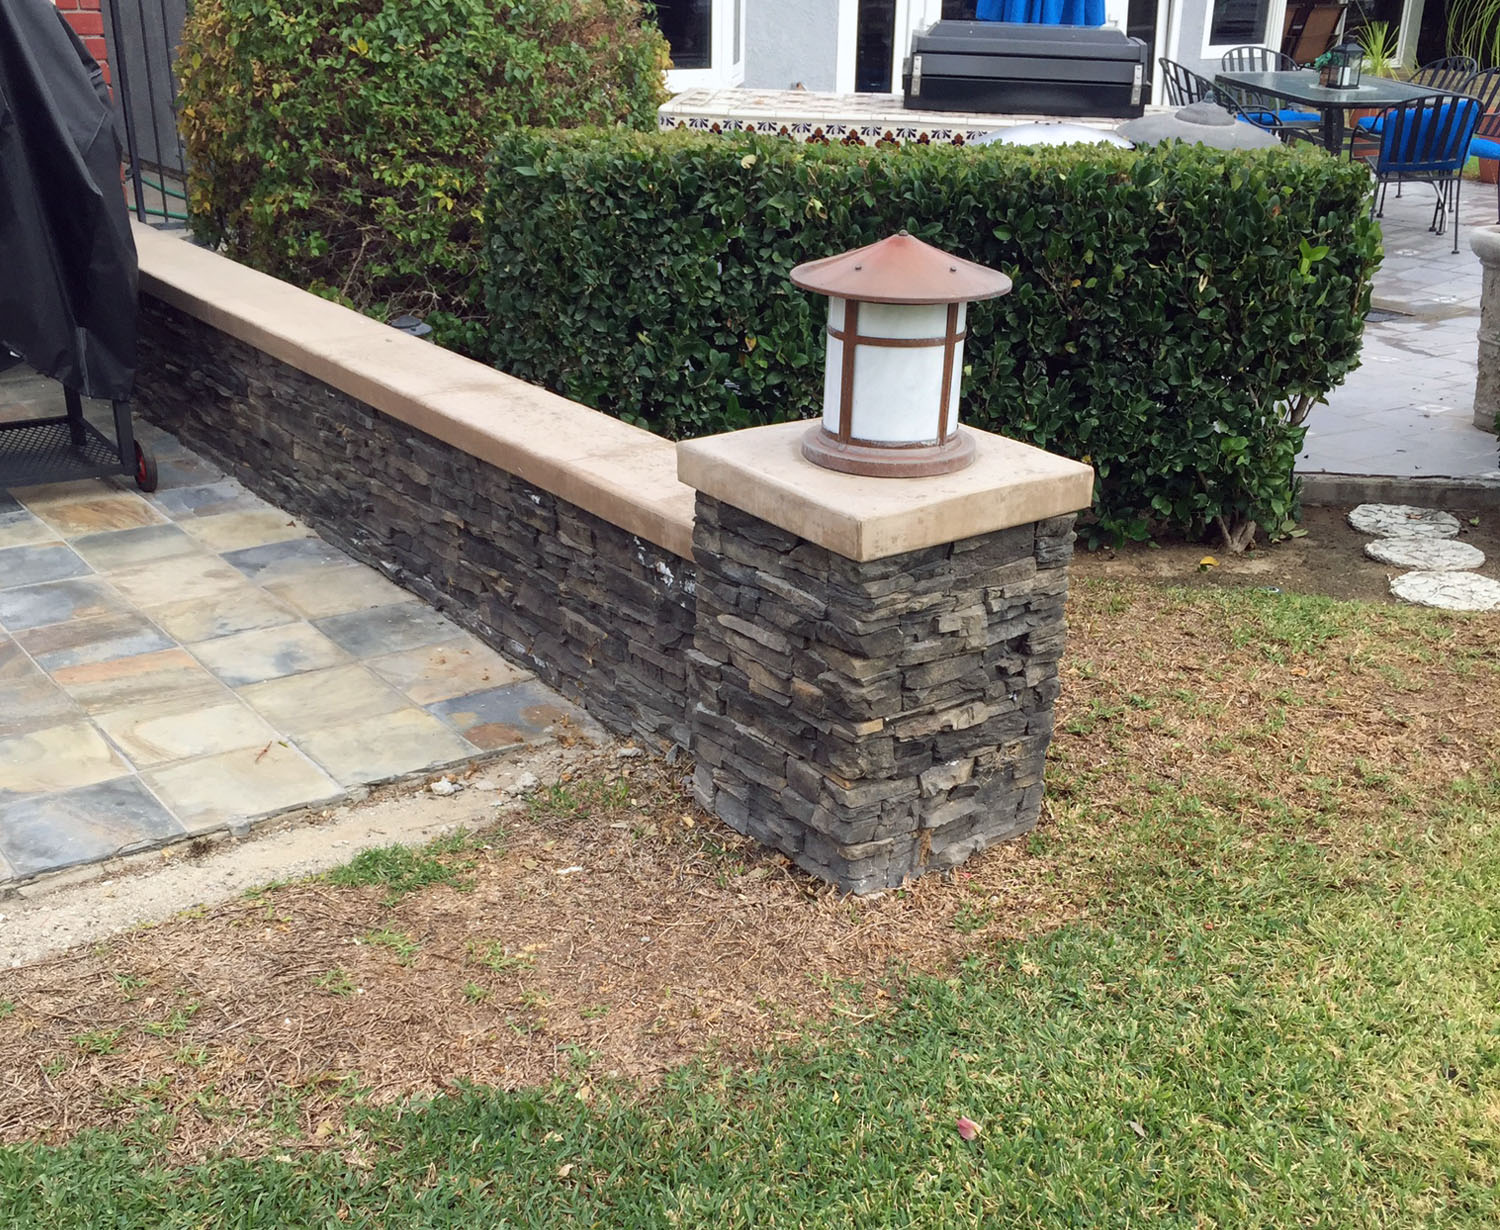 Decorative Concrete Blocks & Walls in Orange County, CA